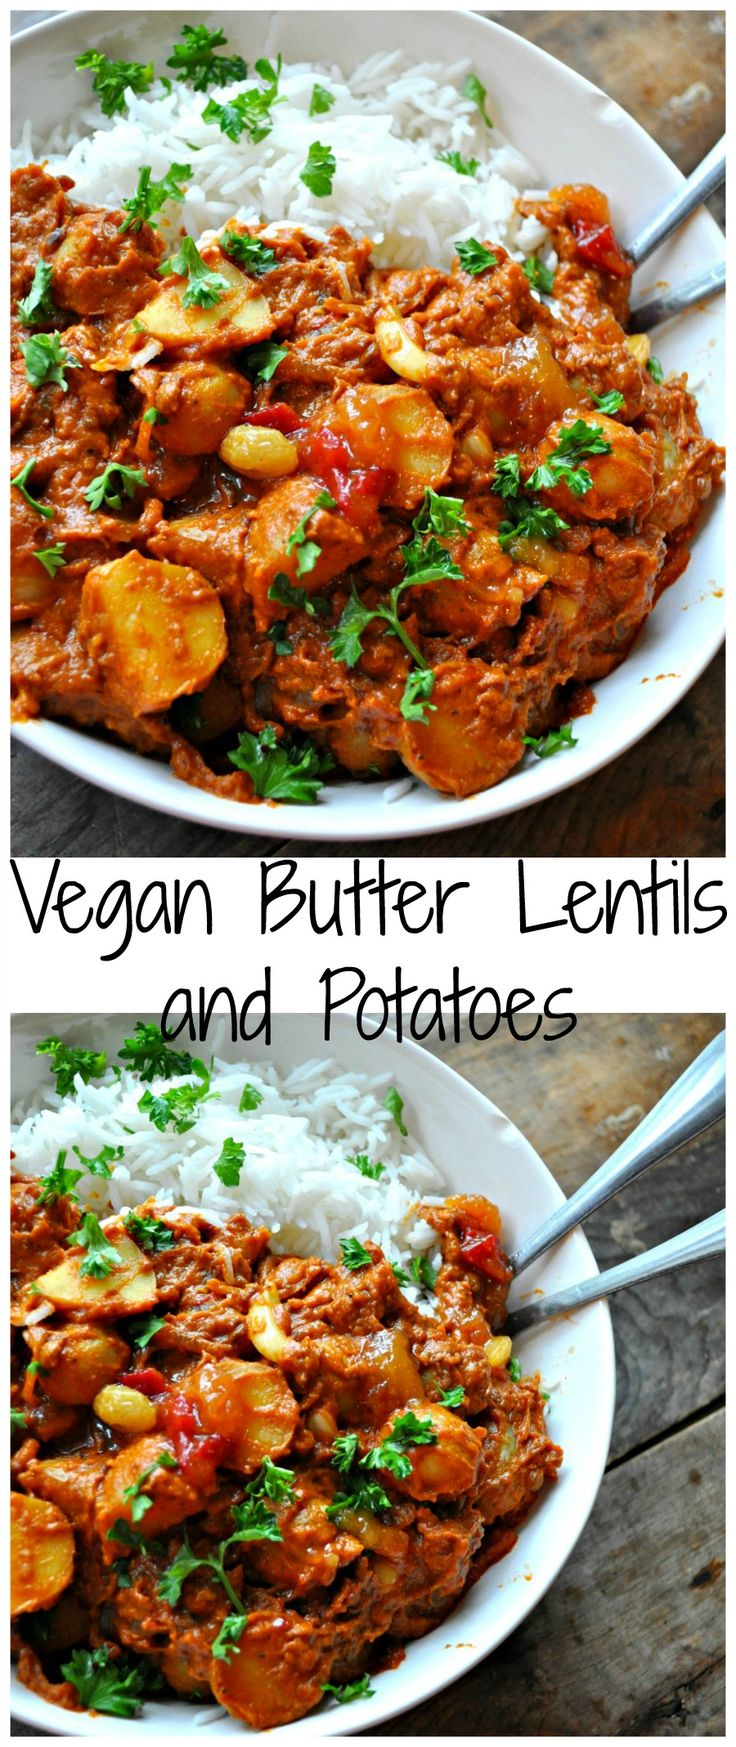 Vegan Butter Lentils and Potatoes